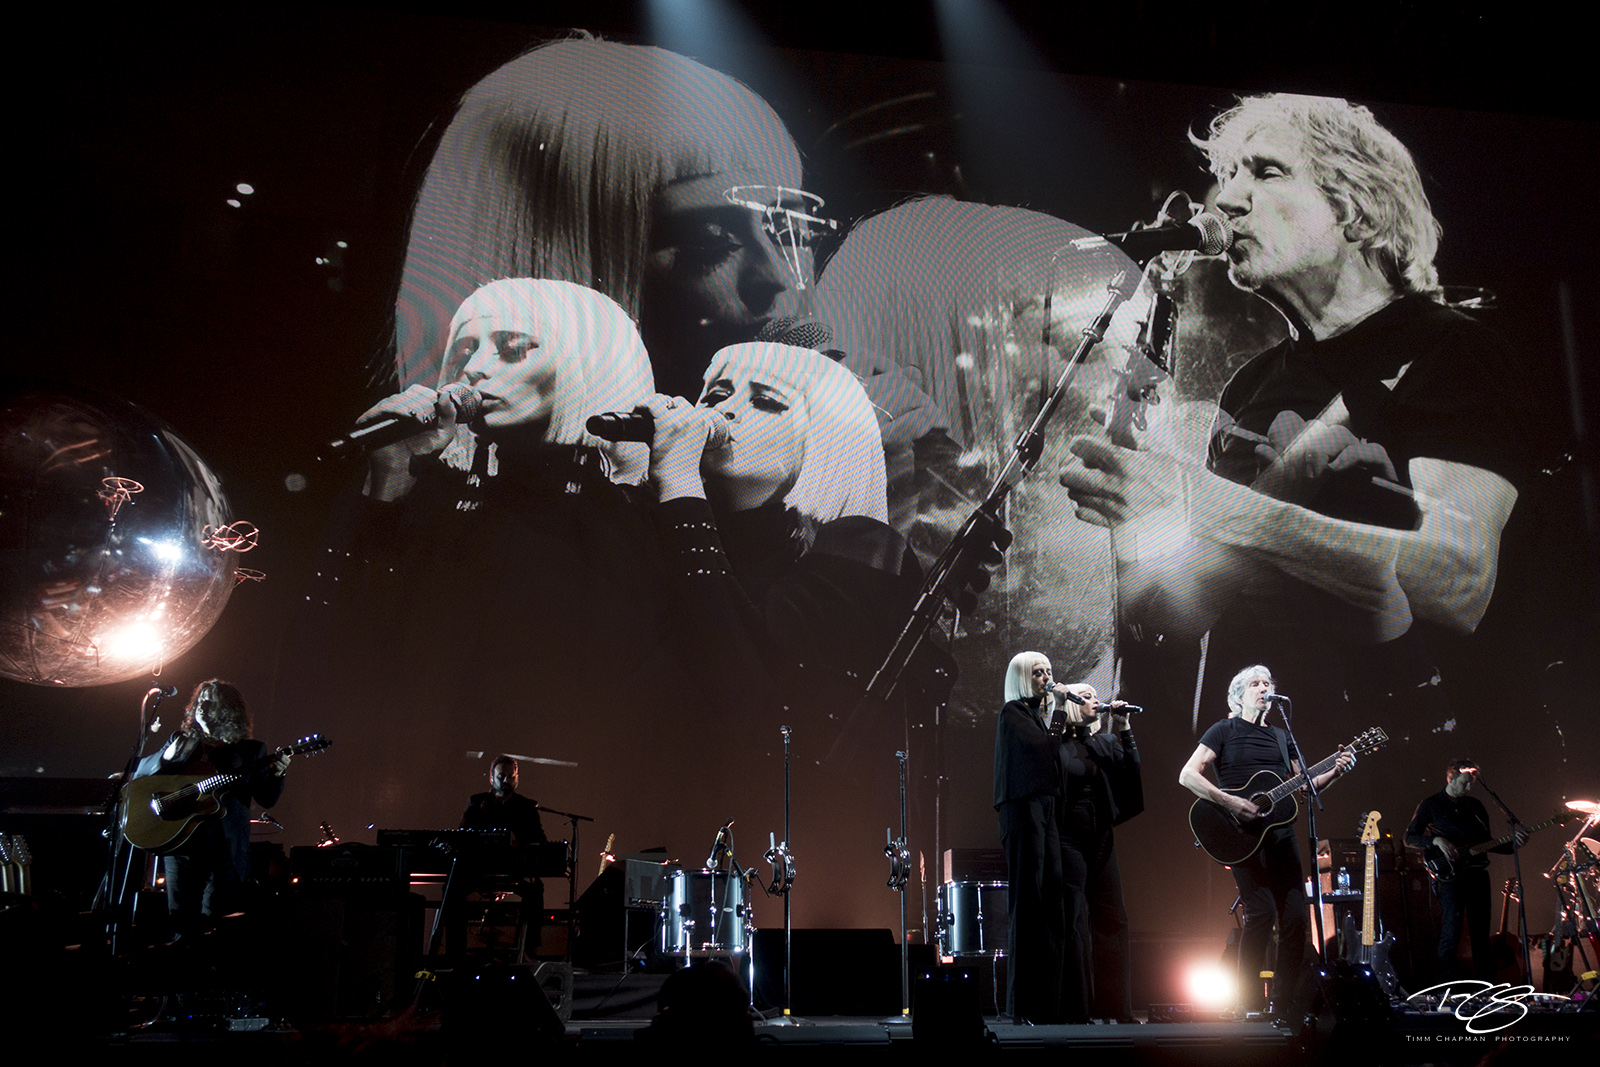 roger waters, pink floyd, in concert, performing, us + them, us and them, acoustic guitar, dark side of the moon, the wall, Holly Laessig, Jess Wolfe, Jonathan Wilson, Gus Seyffert, Dave Kilminster, J, photo